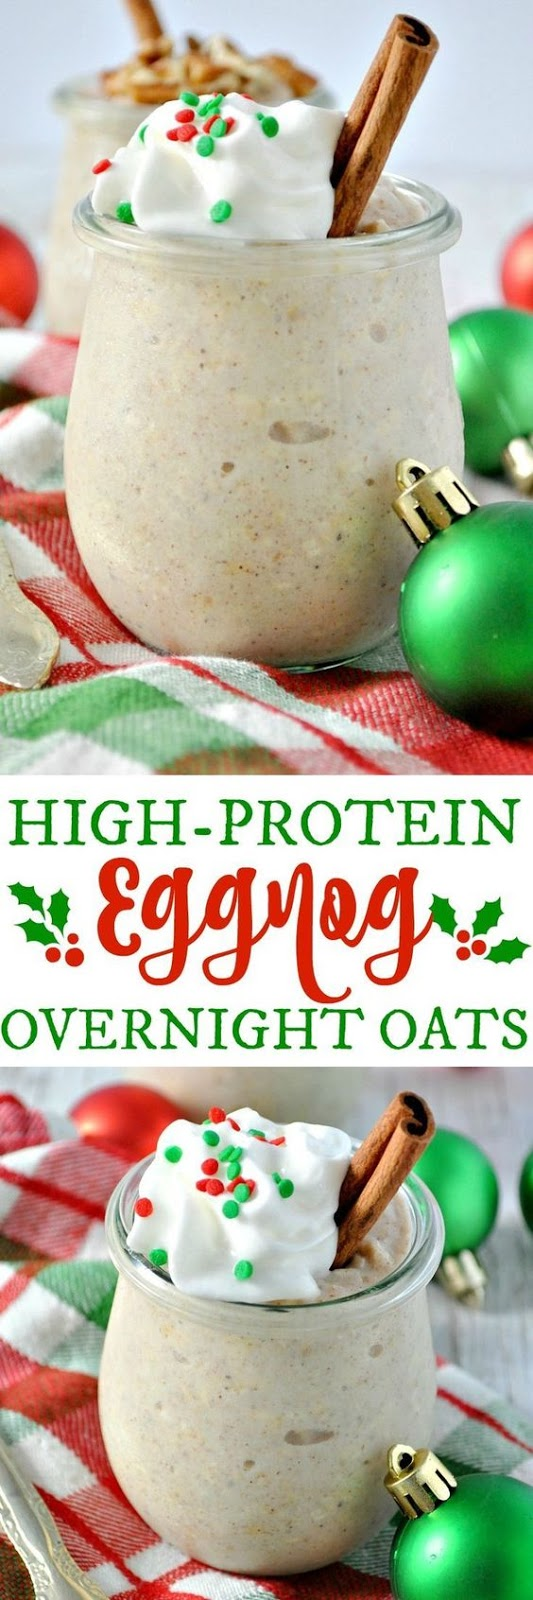 High-Protein Eggnog Overnight Oats